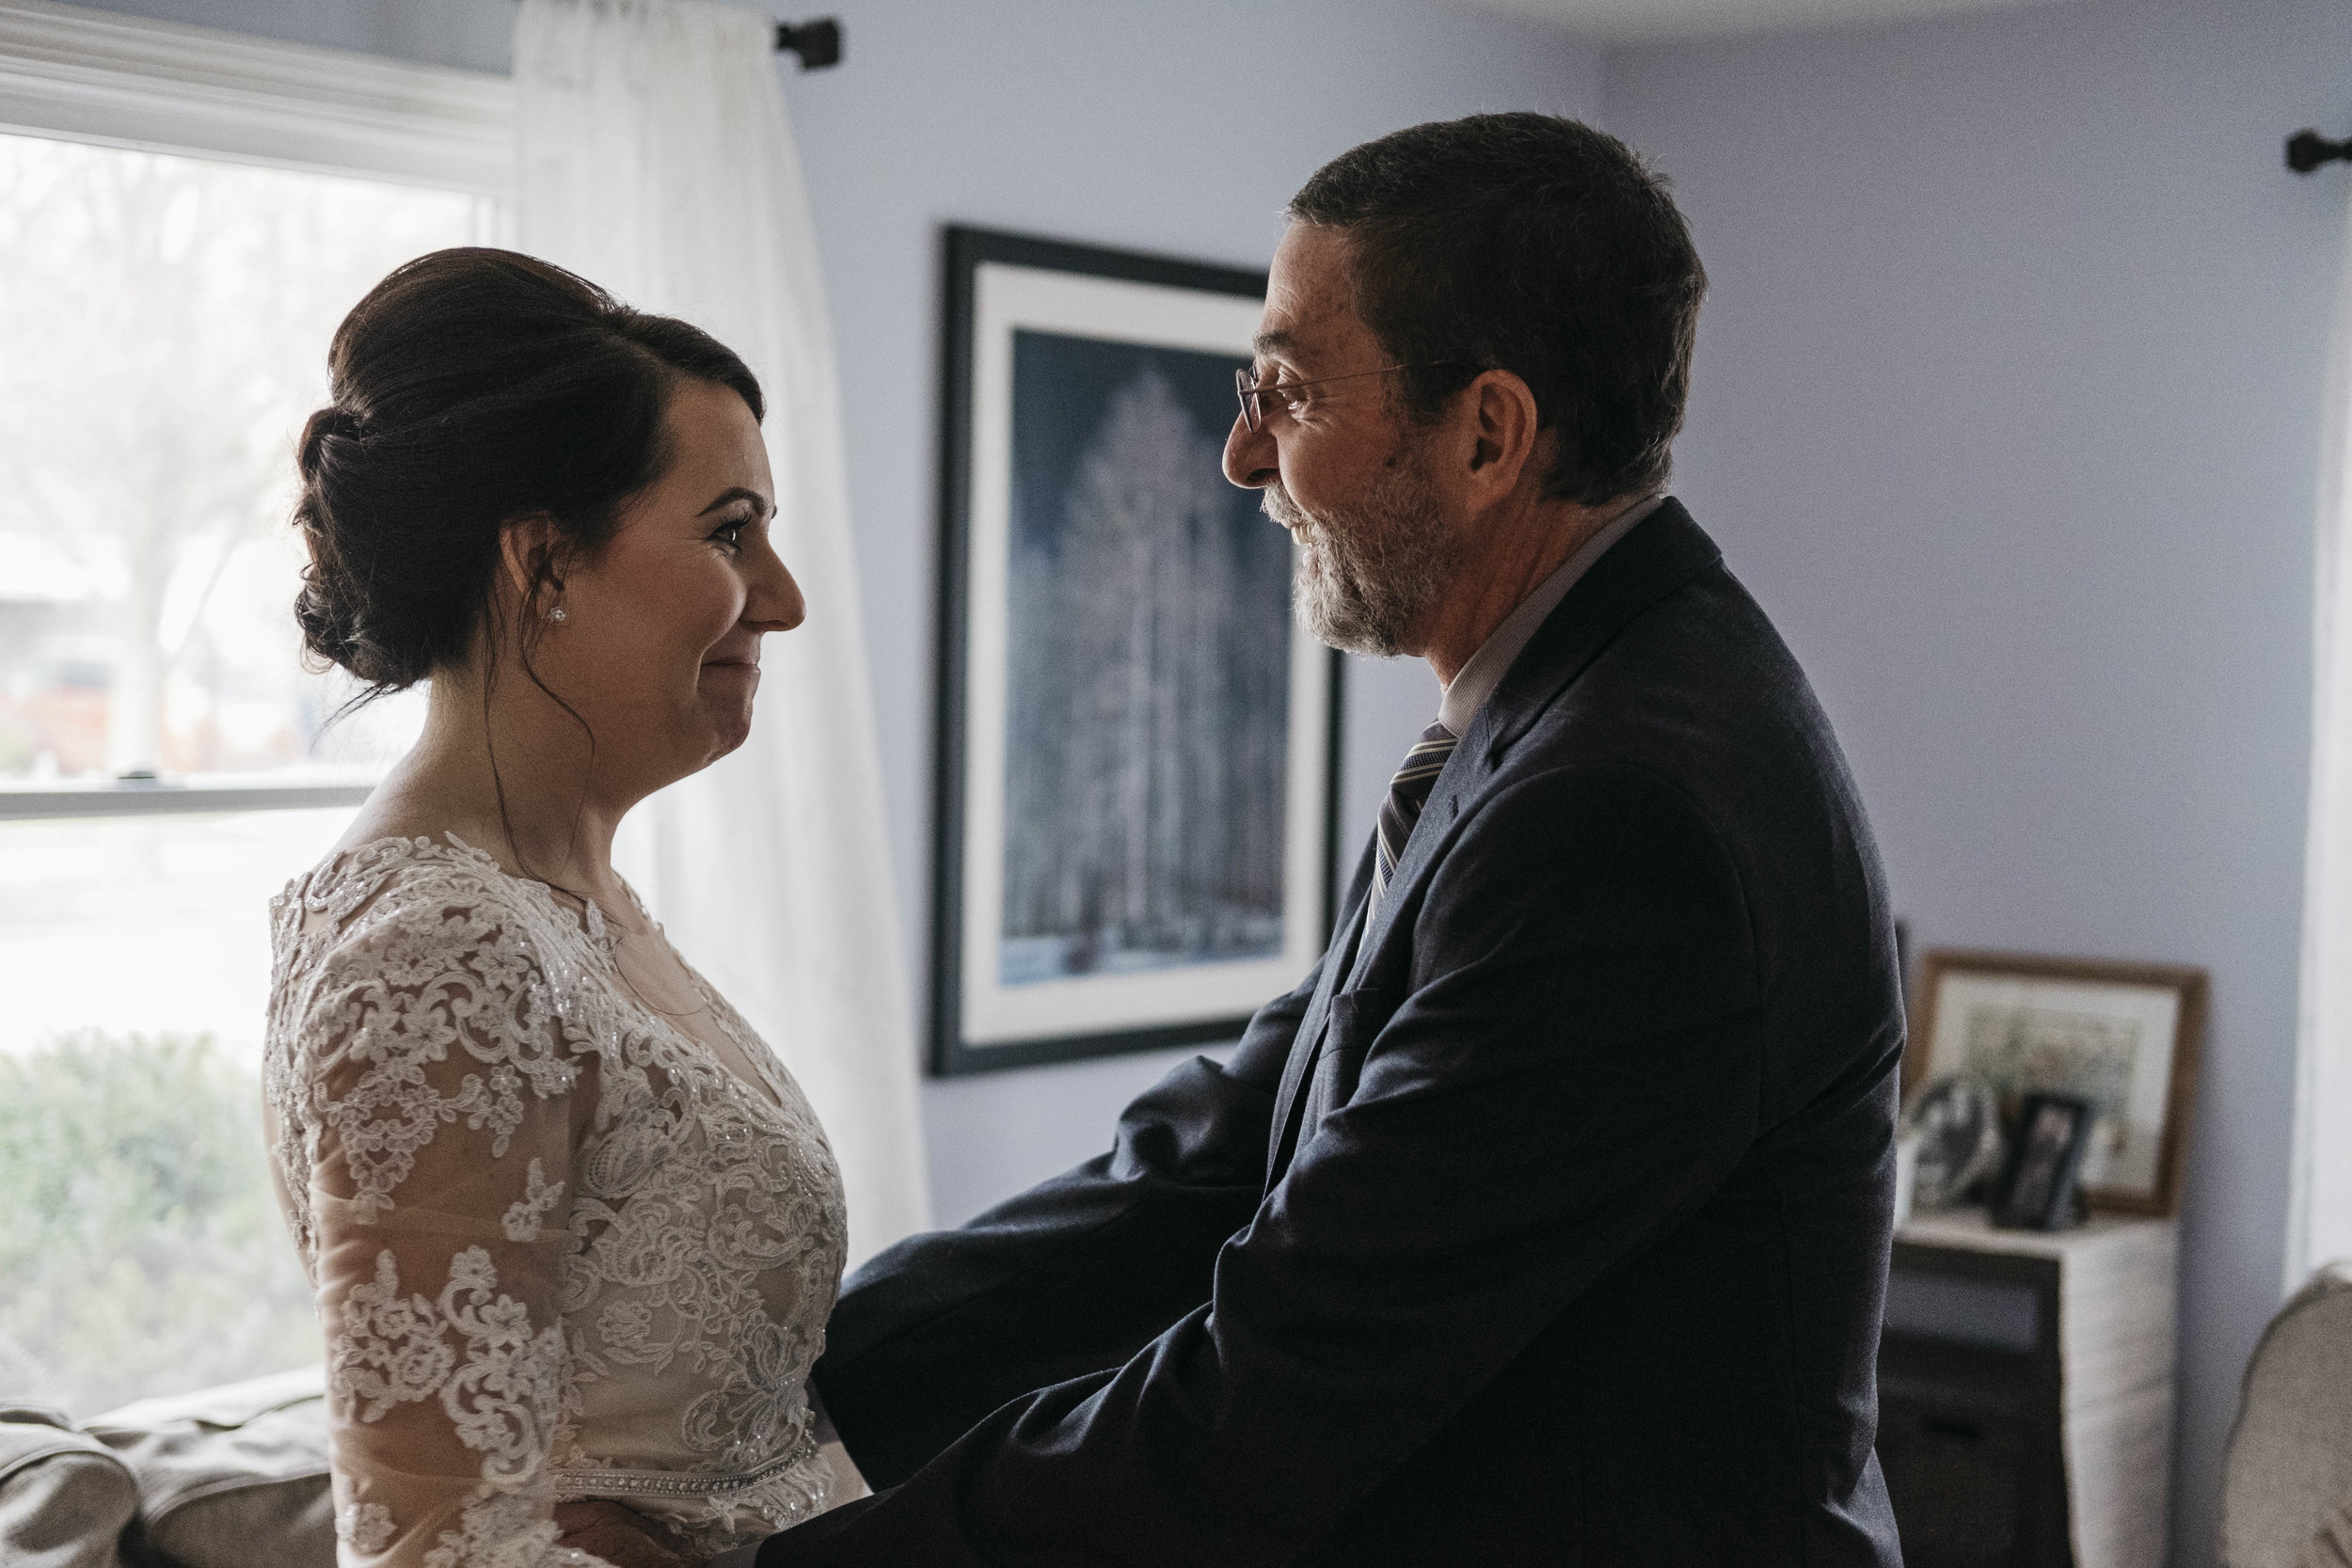 Bride and father have a first look before wedding ceremony.